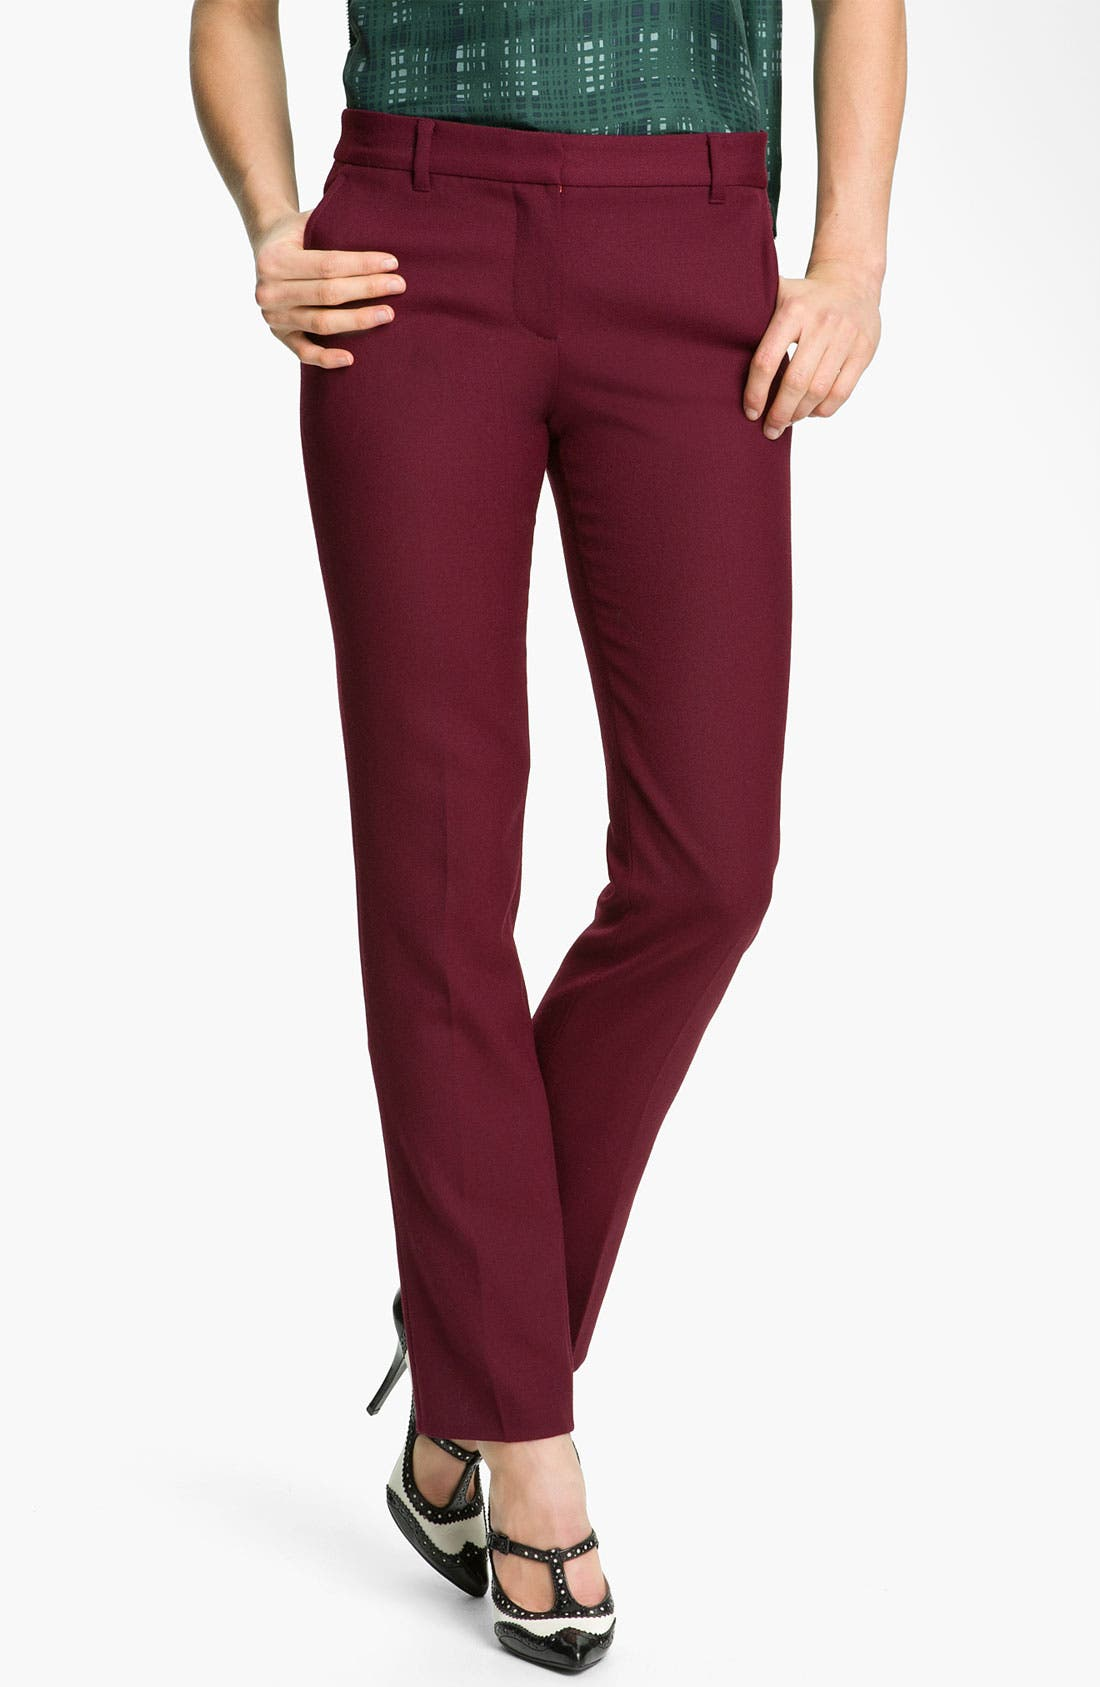 Main Image - Tory Burch 'Celeste' Pants